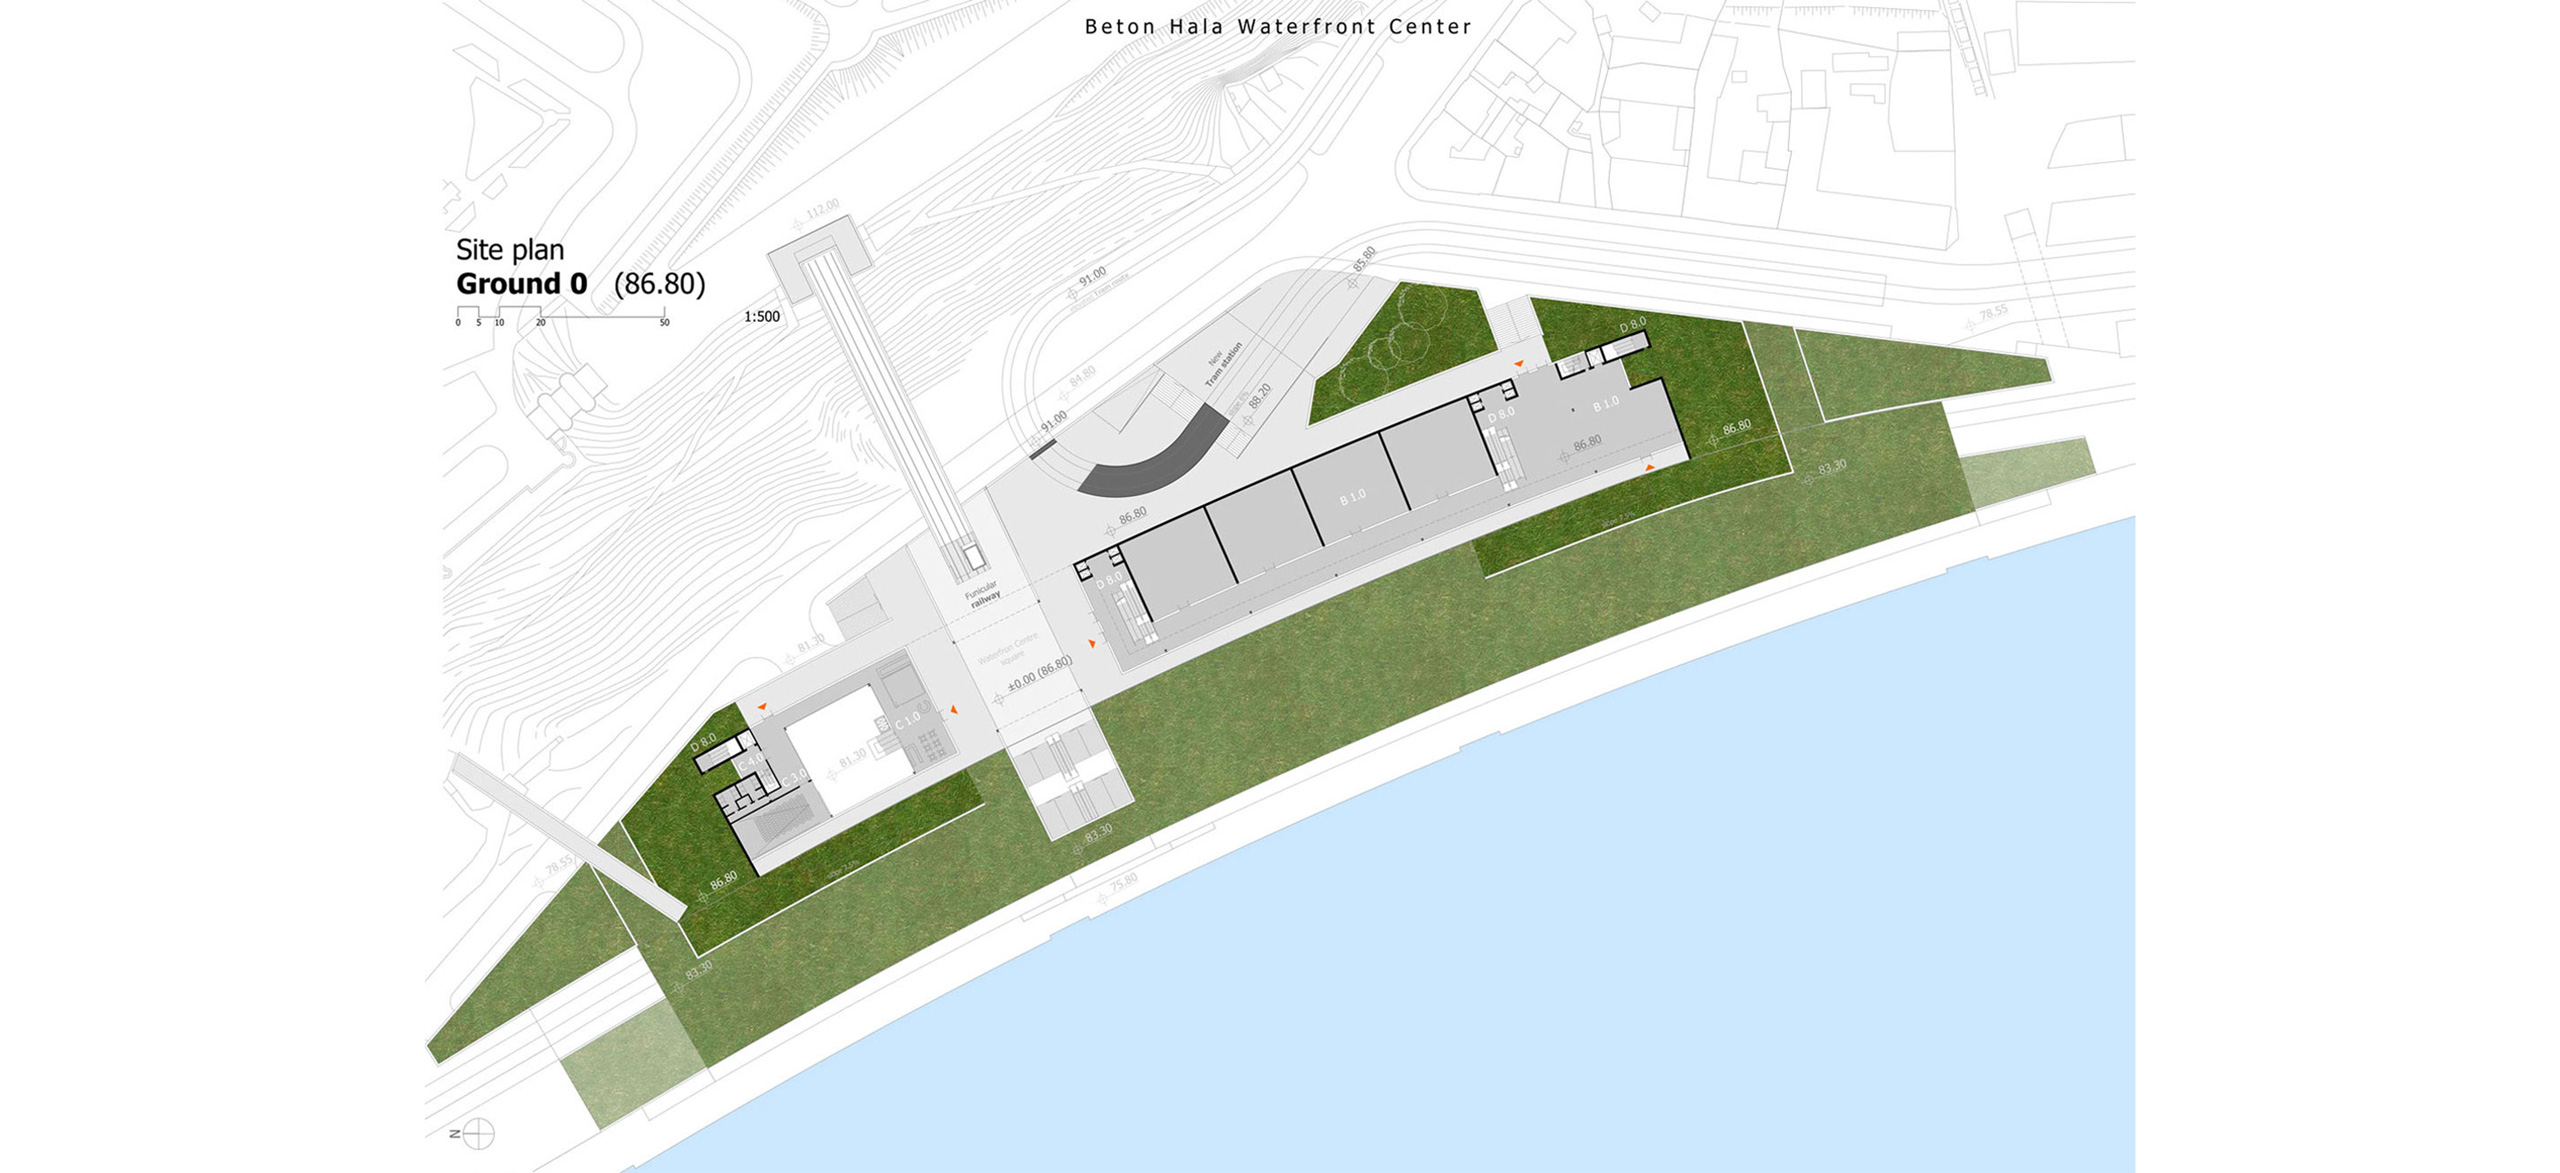 Waterfront Centre _ BETON HALA | Belgrade | author Ilja Mikitisin